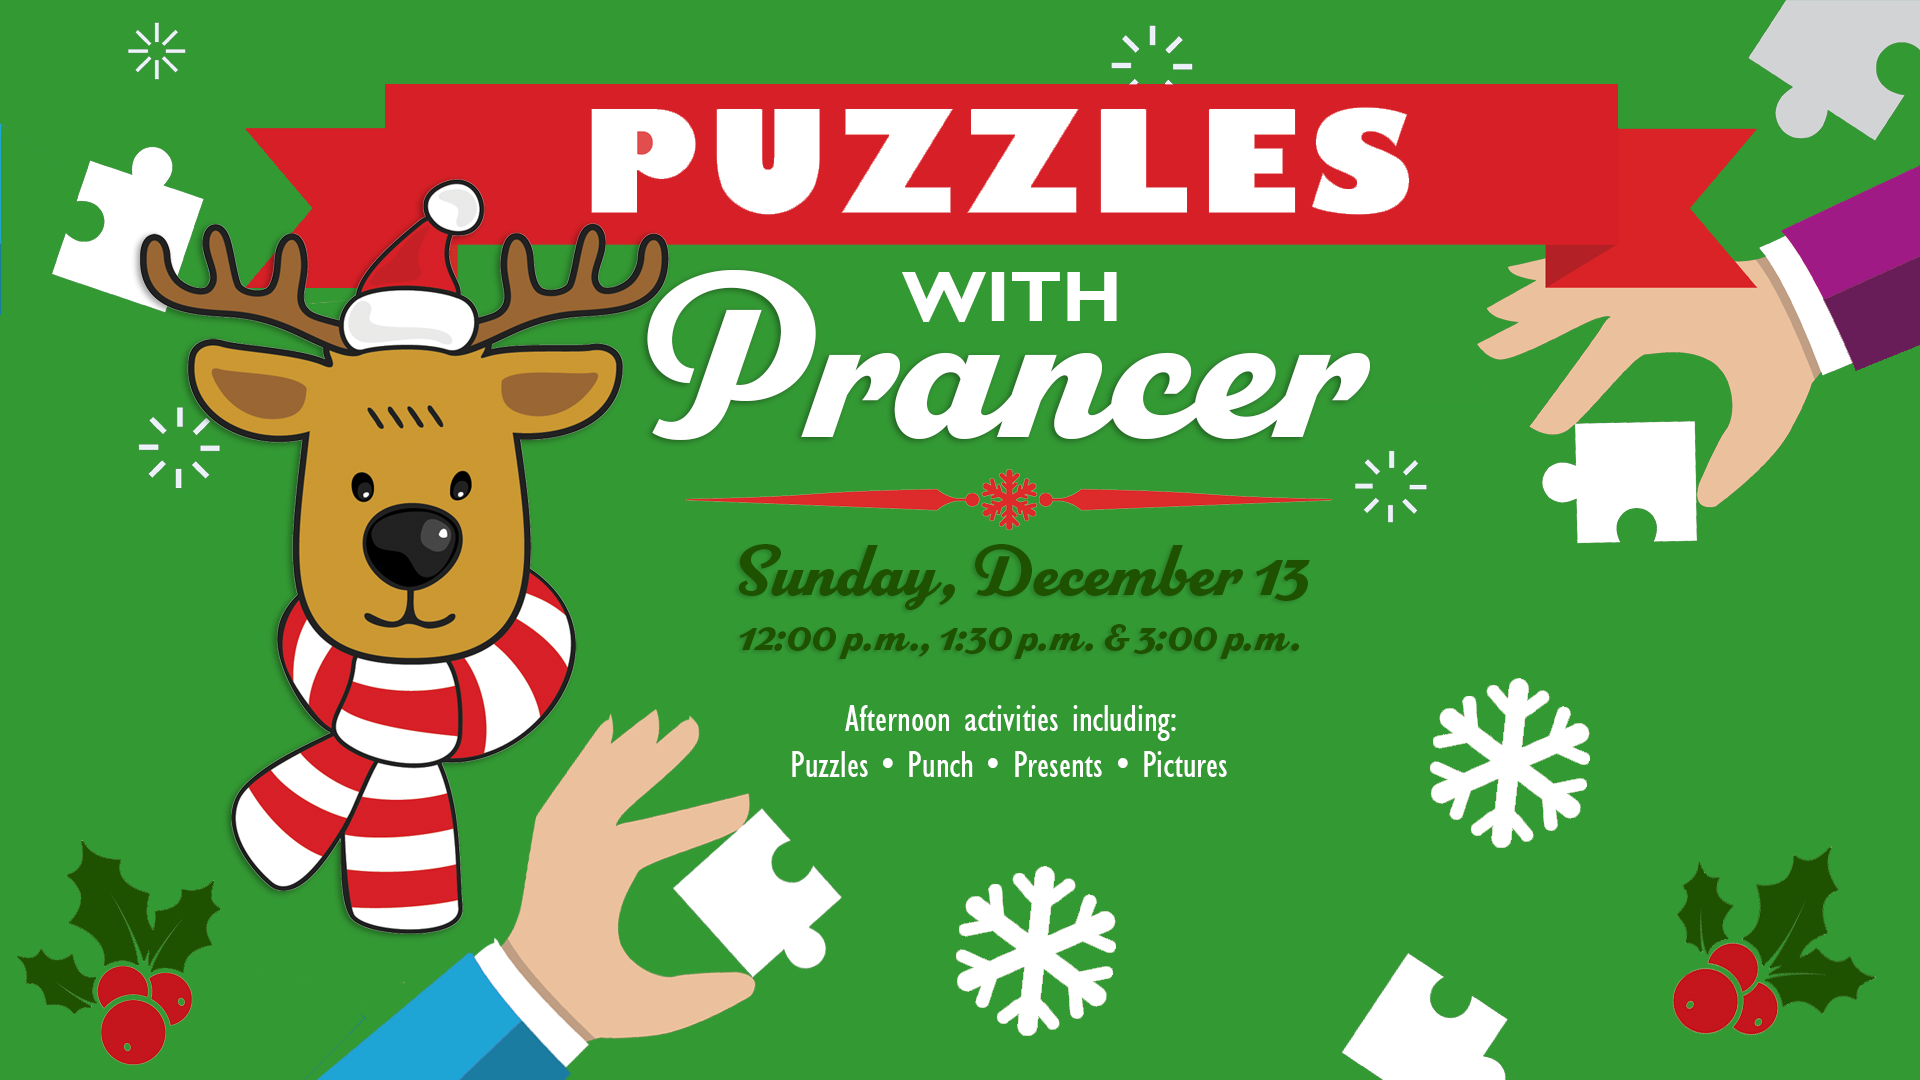 Puzzles with Prancer